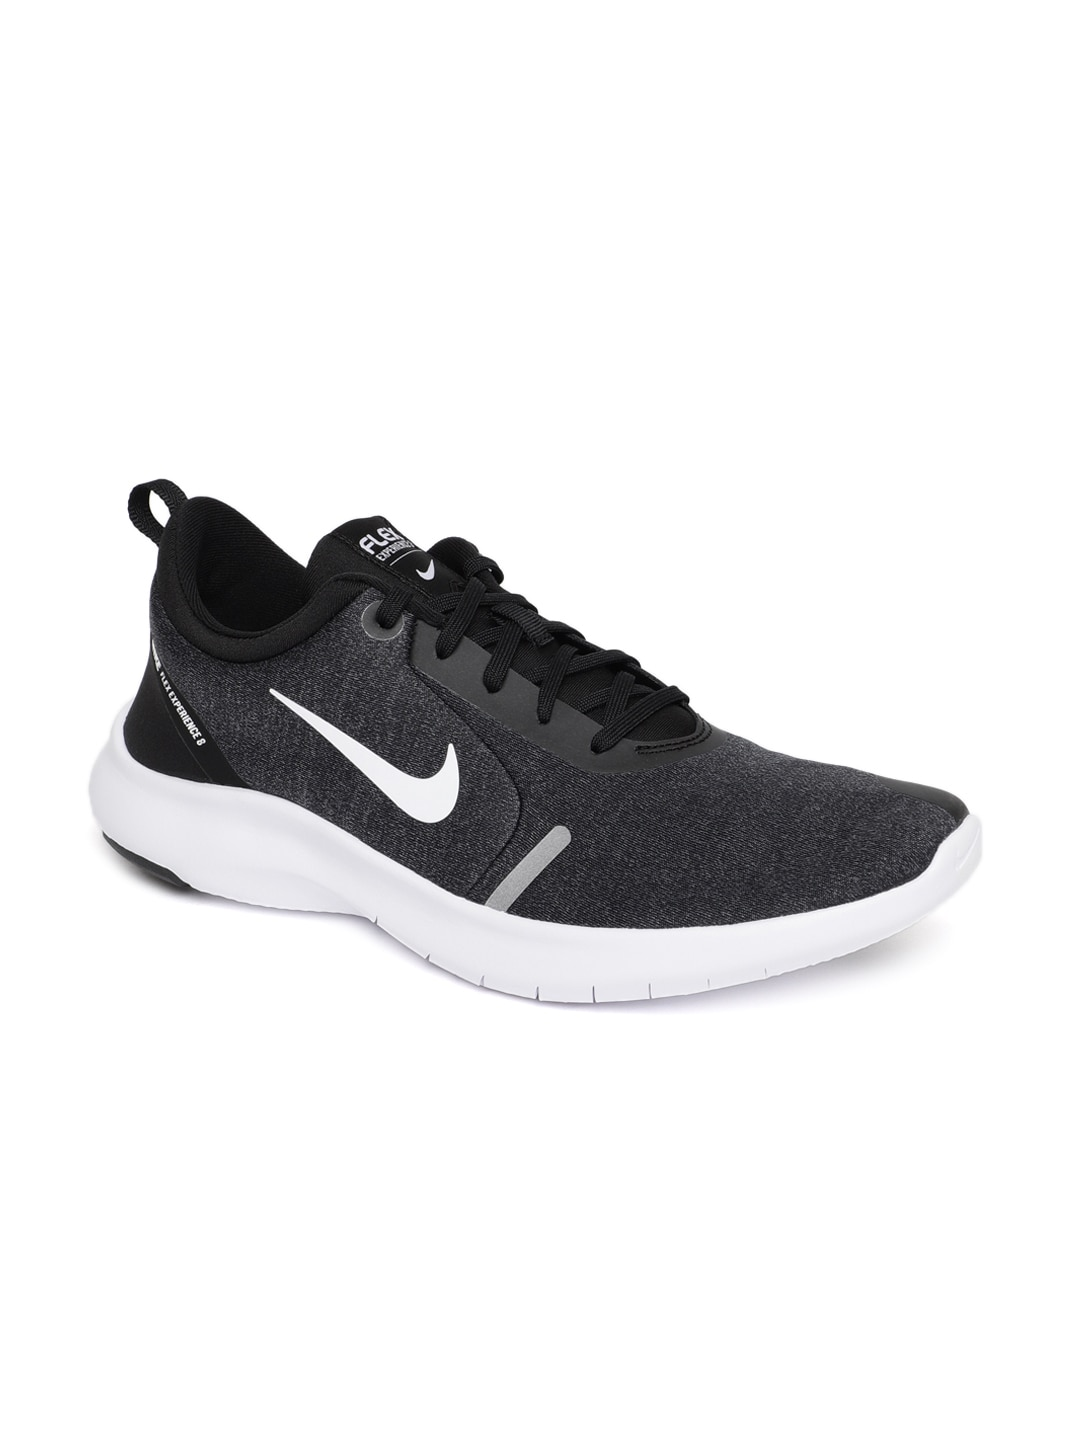 e28443f1550 Nike Shoes - Buy Nike Shoes for Men